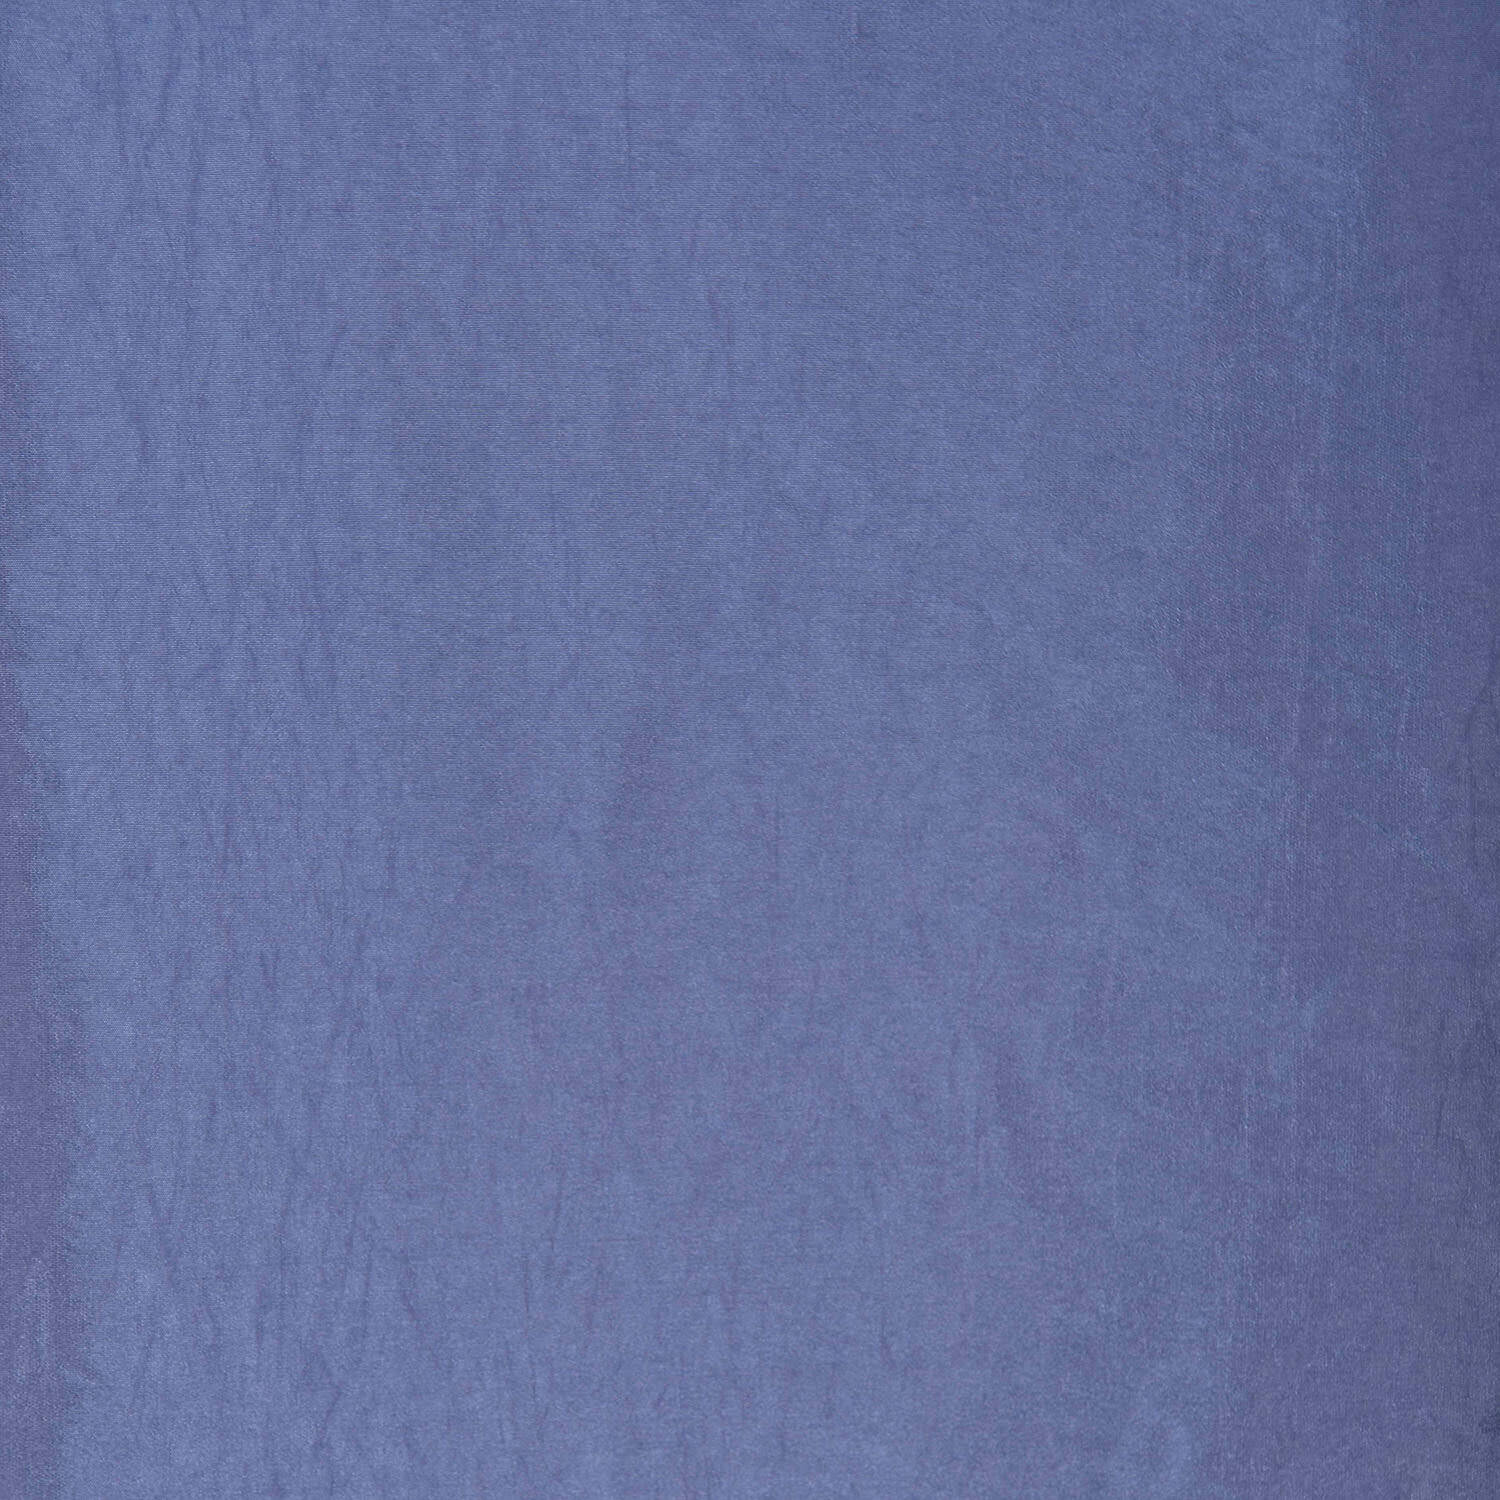 Wisteria Blue Faux Silk Taffeta Swatch